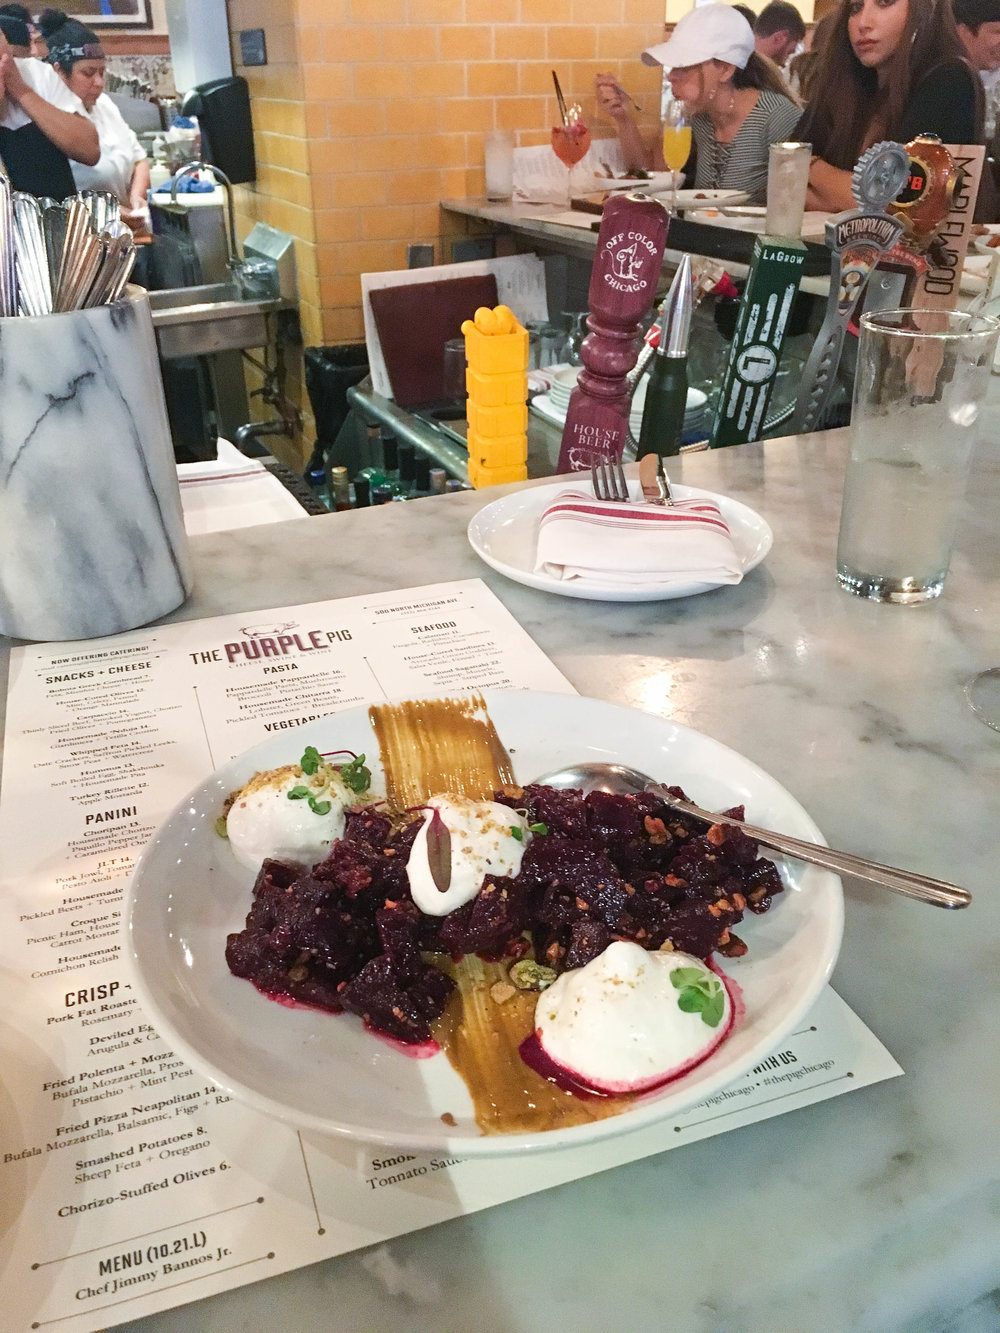 Salt-roasted beets with whipped ricotta and pistachio butter